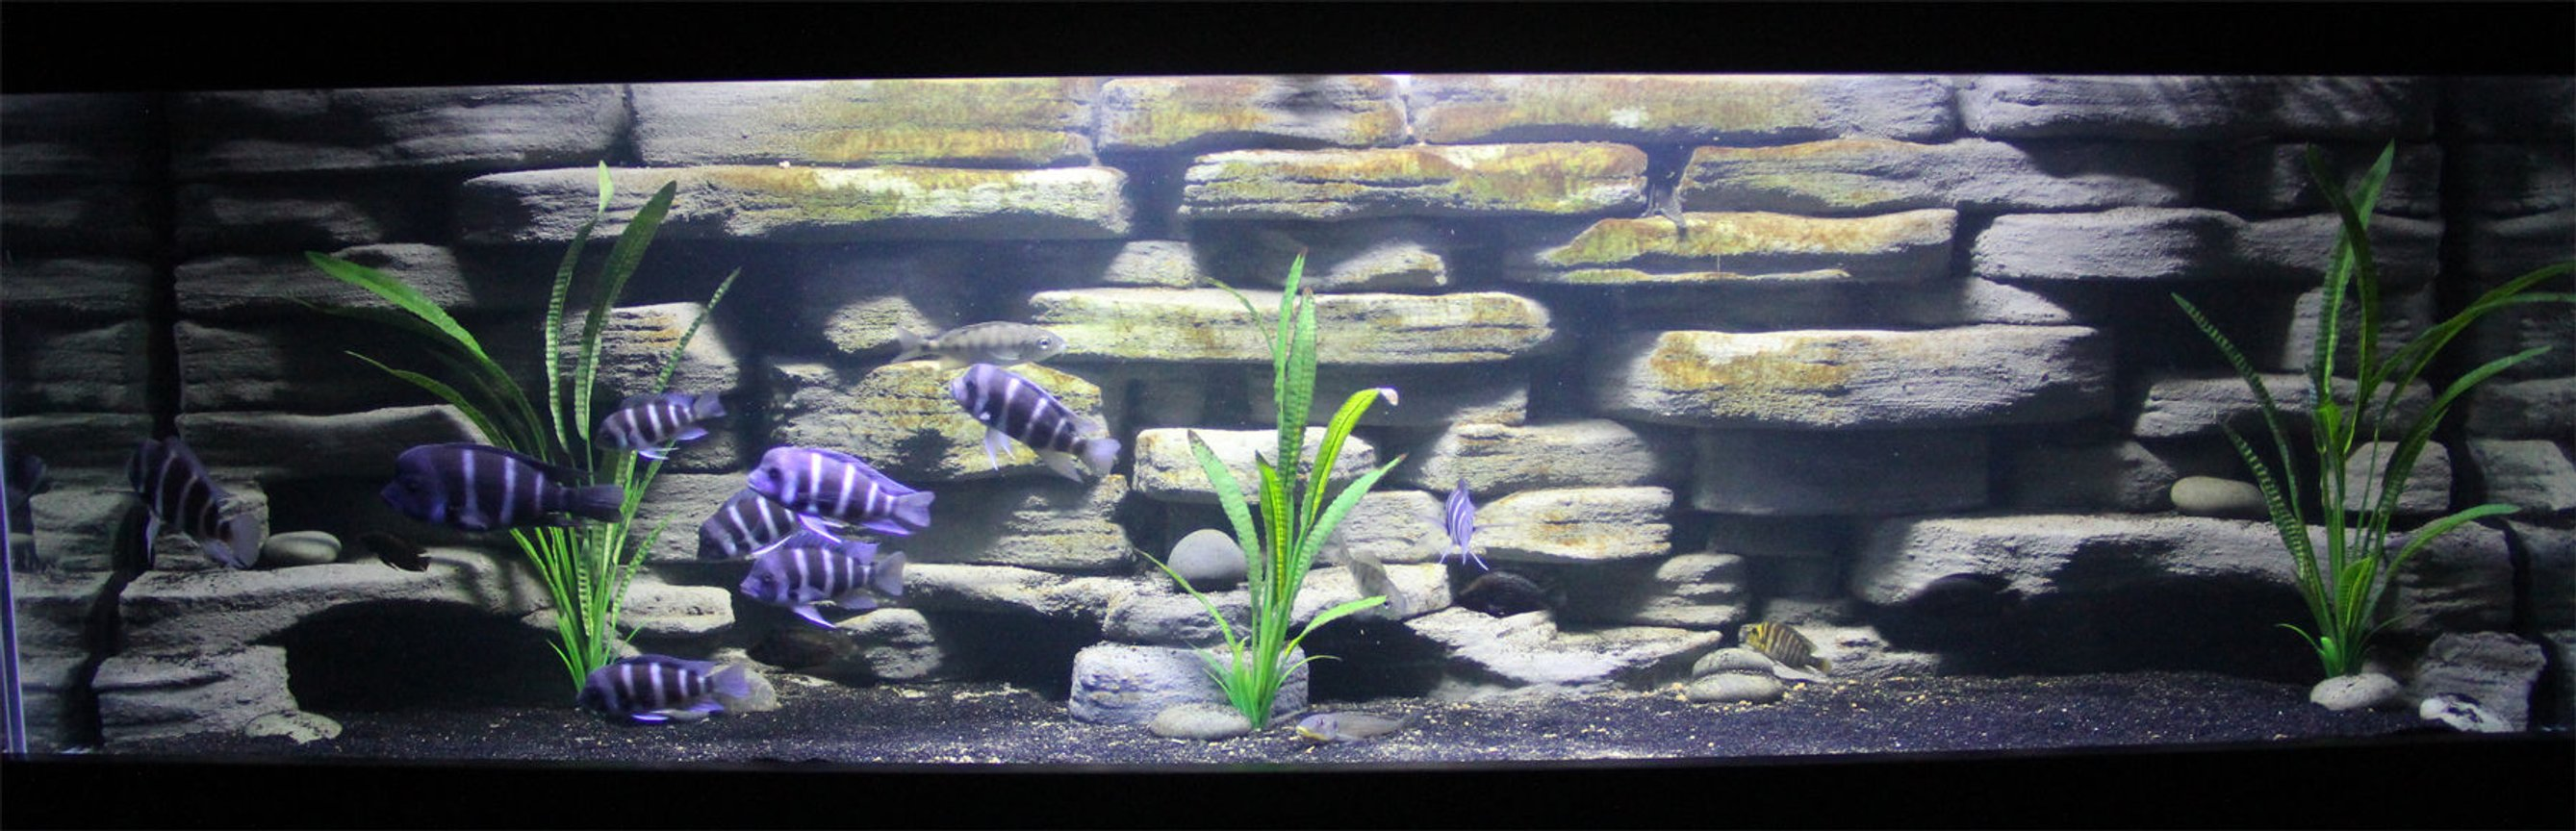 125 gallons freshwater fish tank (mostly fish and non-living decorations) - 125 Gallon with Custom built background